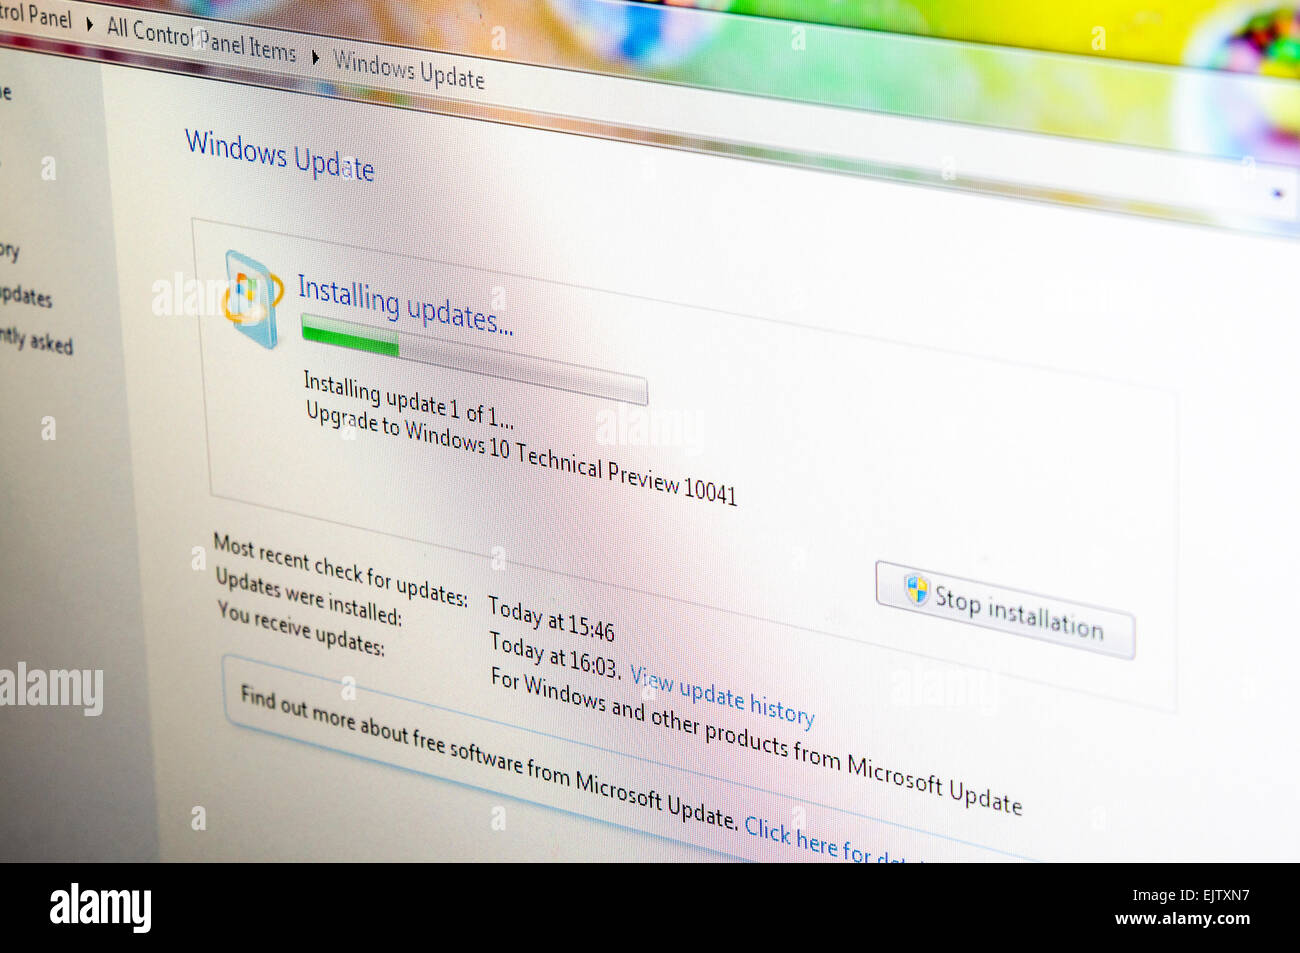 Installing Windows 10 Technical Preview build 10041, a public beta release. - Stock Image